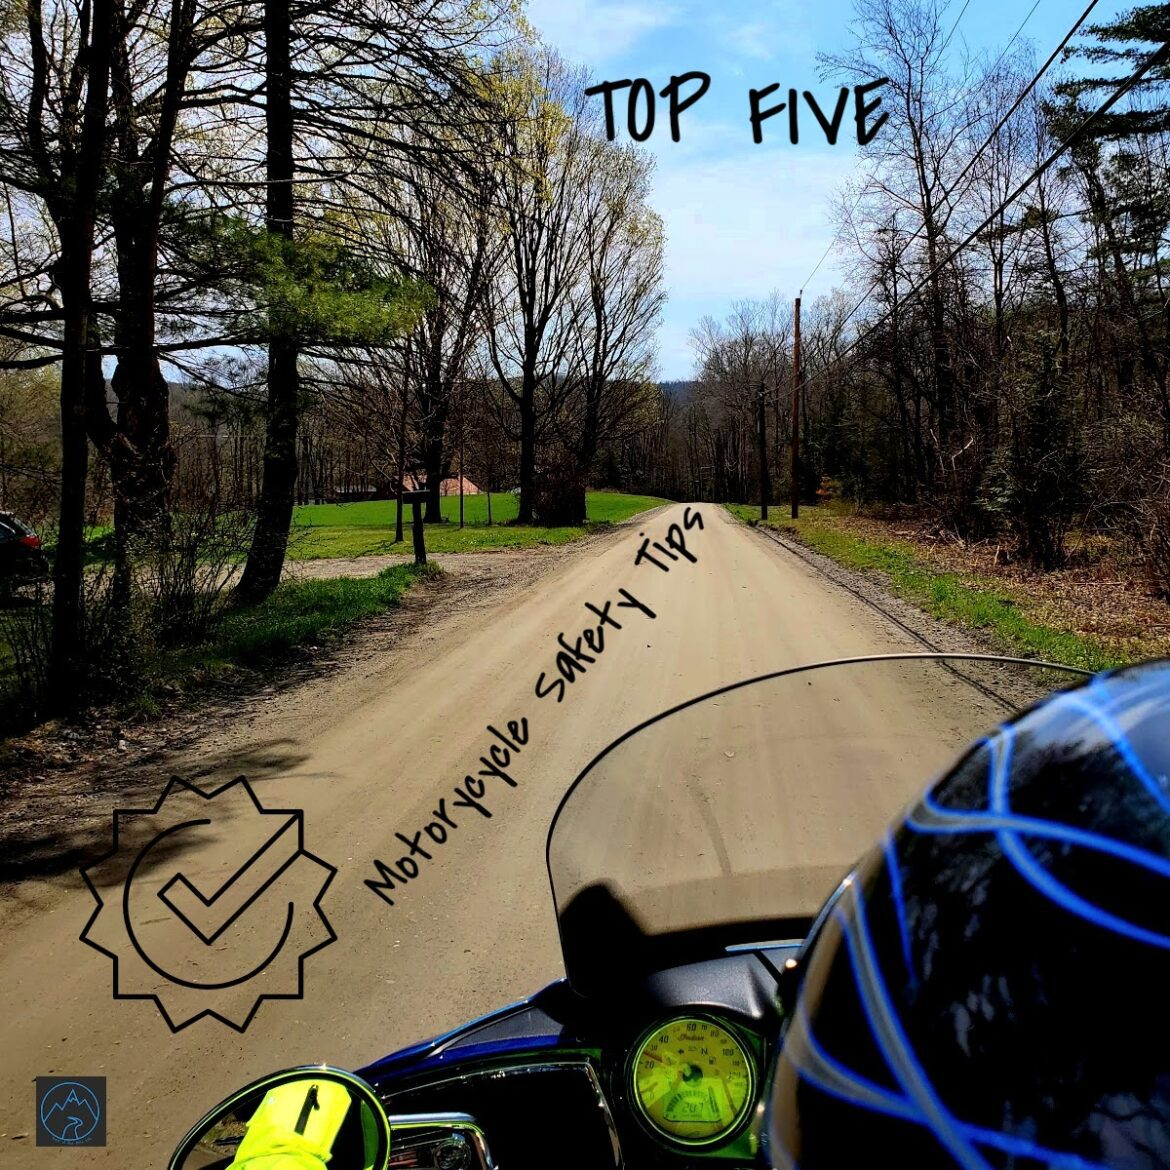 Top 5 Motorcycle Safety Tips